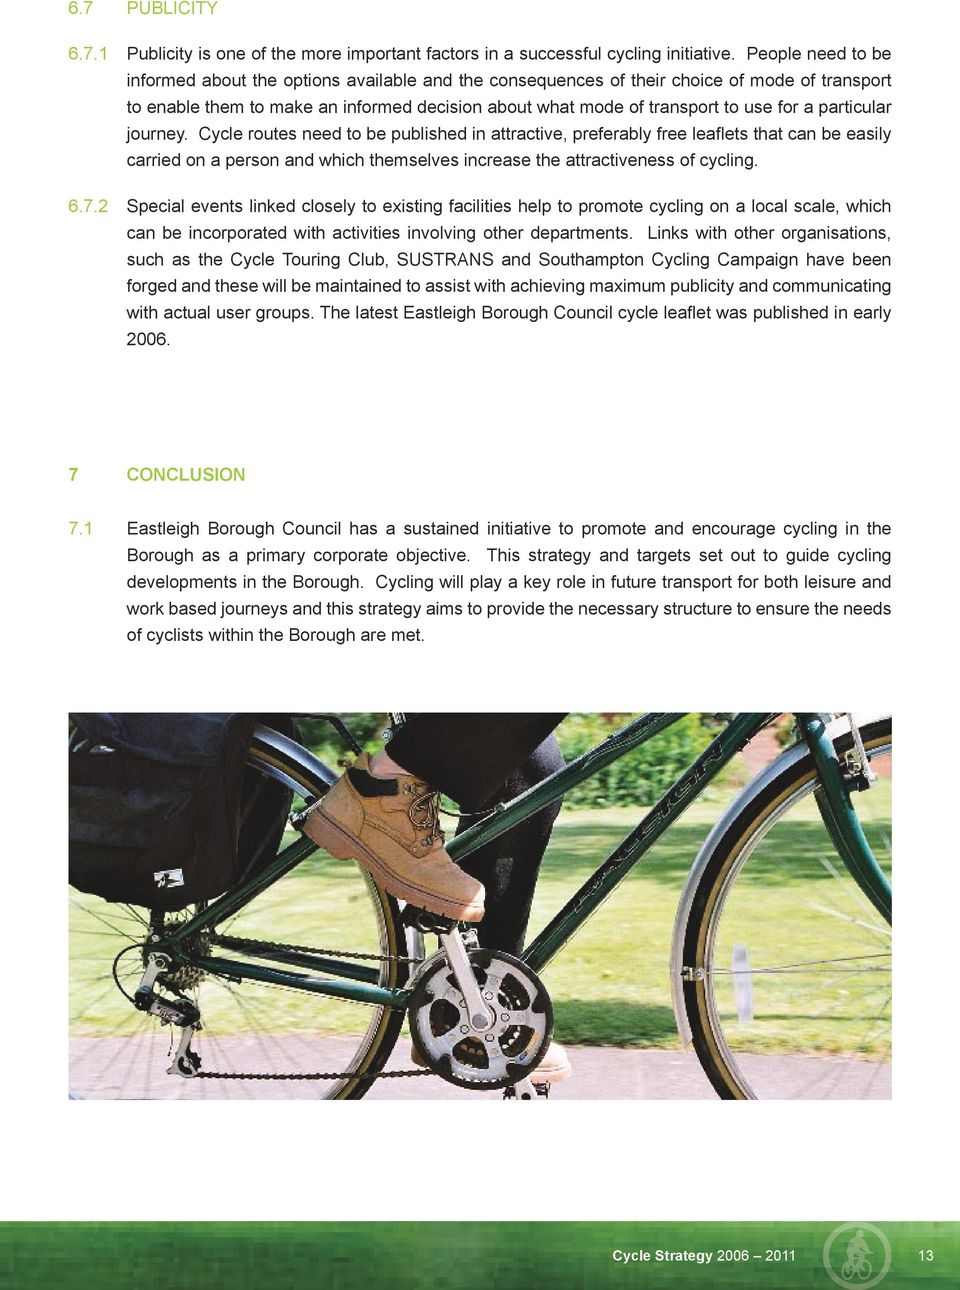 particular journey. Cycle routes need to be published in attractive, preferably free leaflets that can be easily carried on a person and which themselves increase the attractiveness of cycling. 6.7.